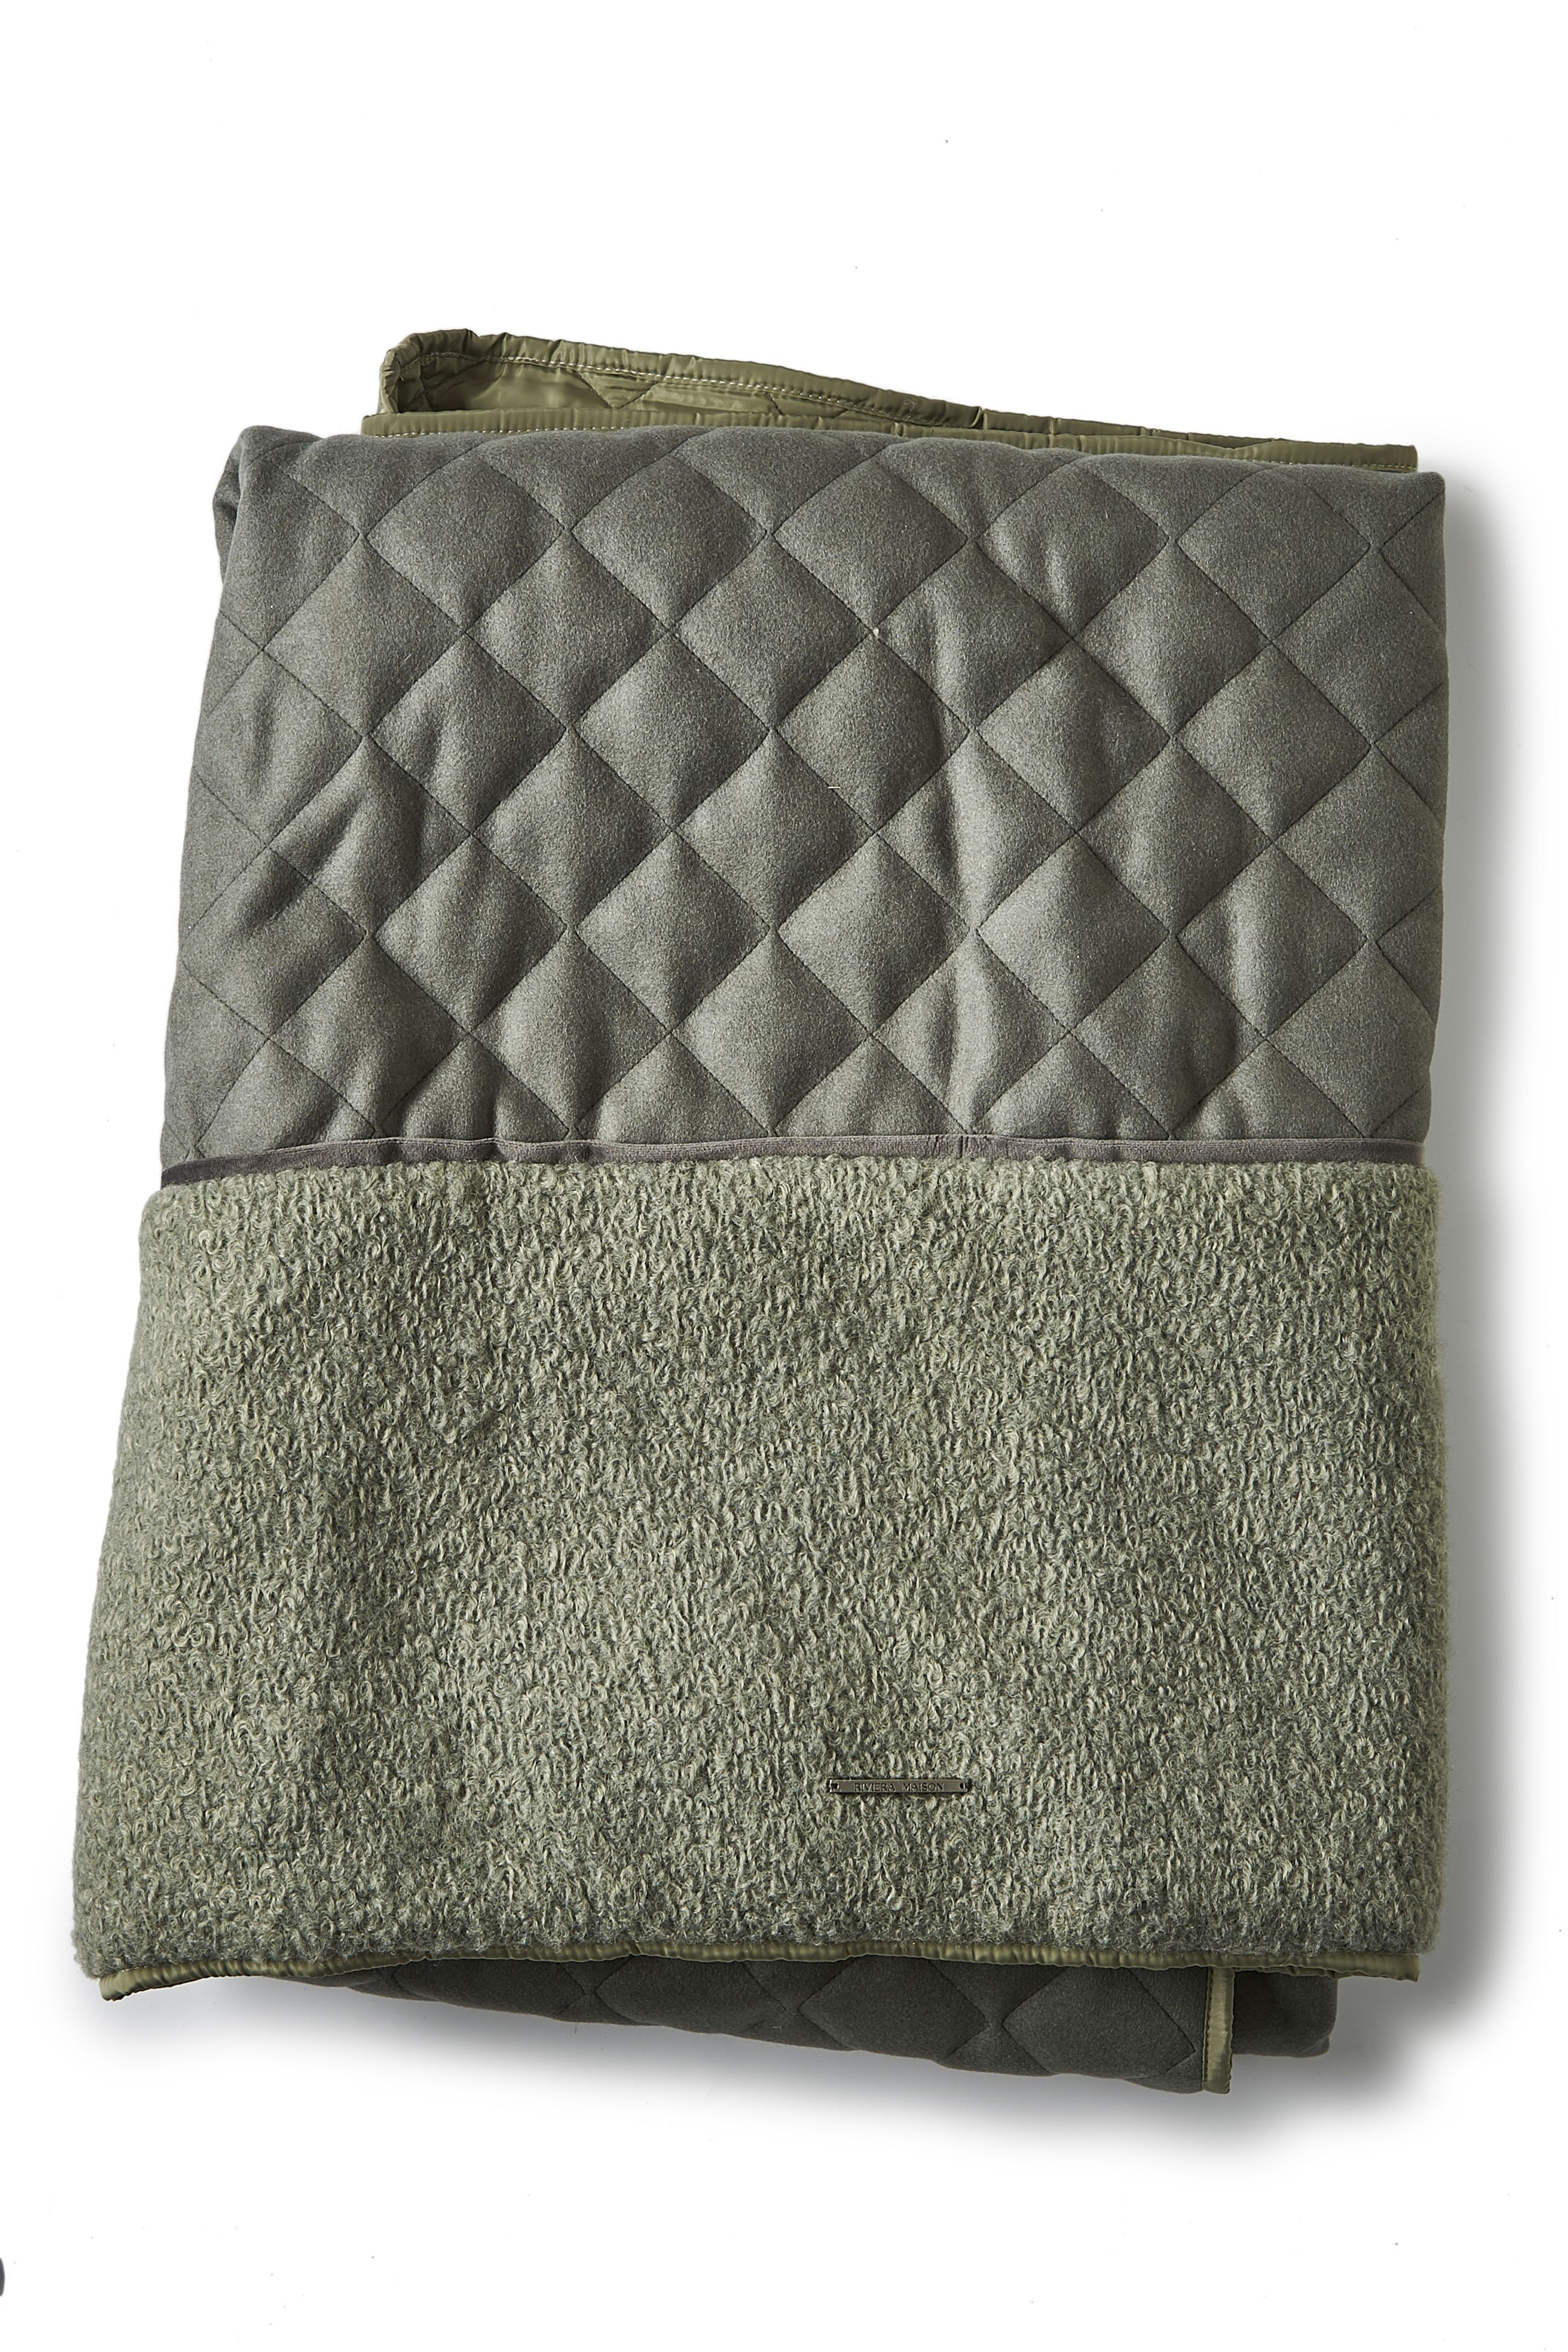 Pléd Amazing Allure Forest Throw green 180 x 130